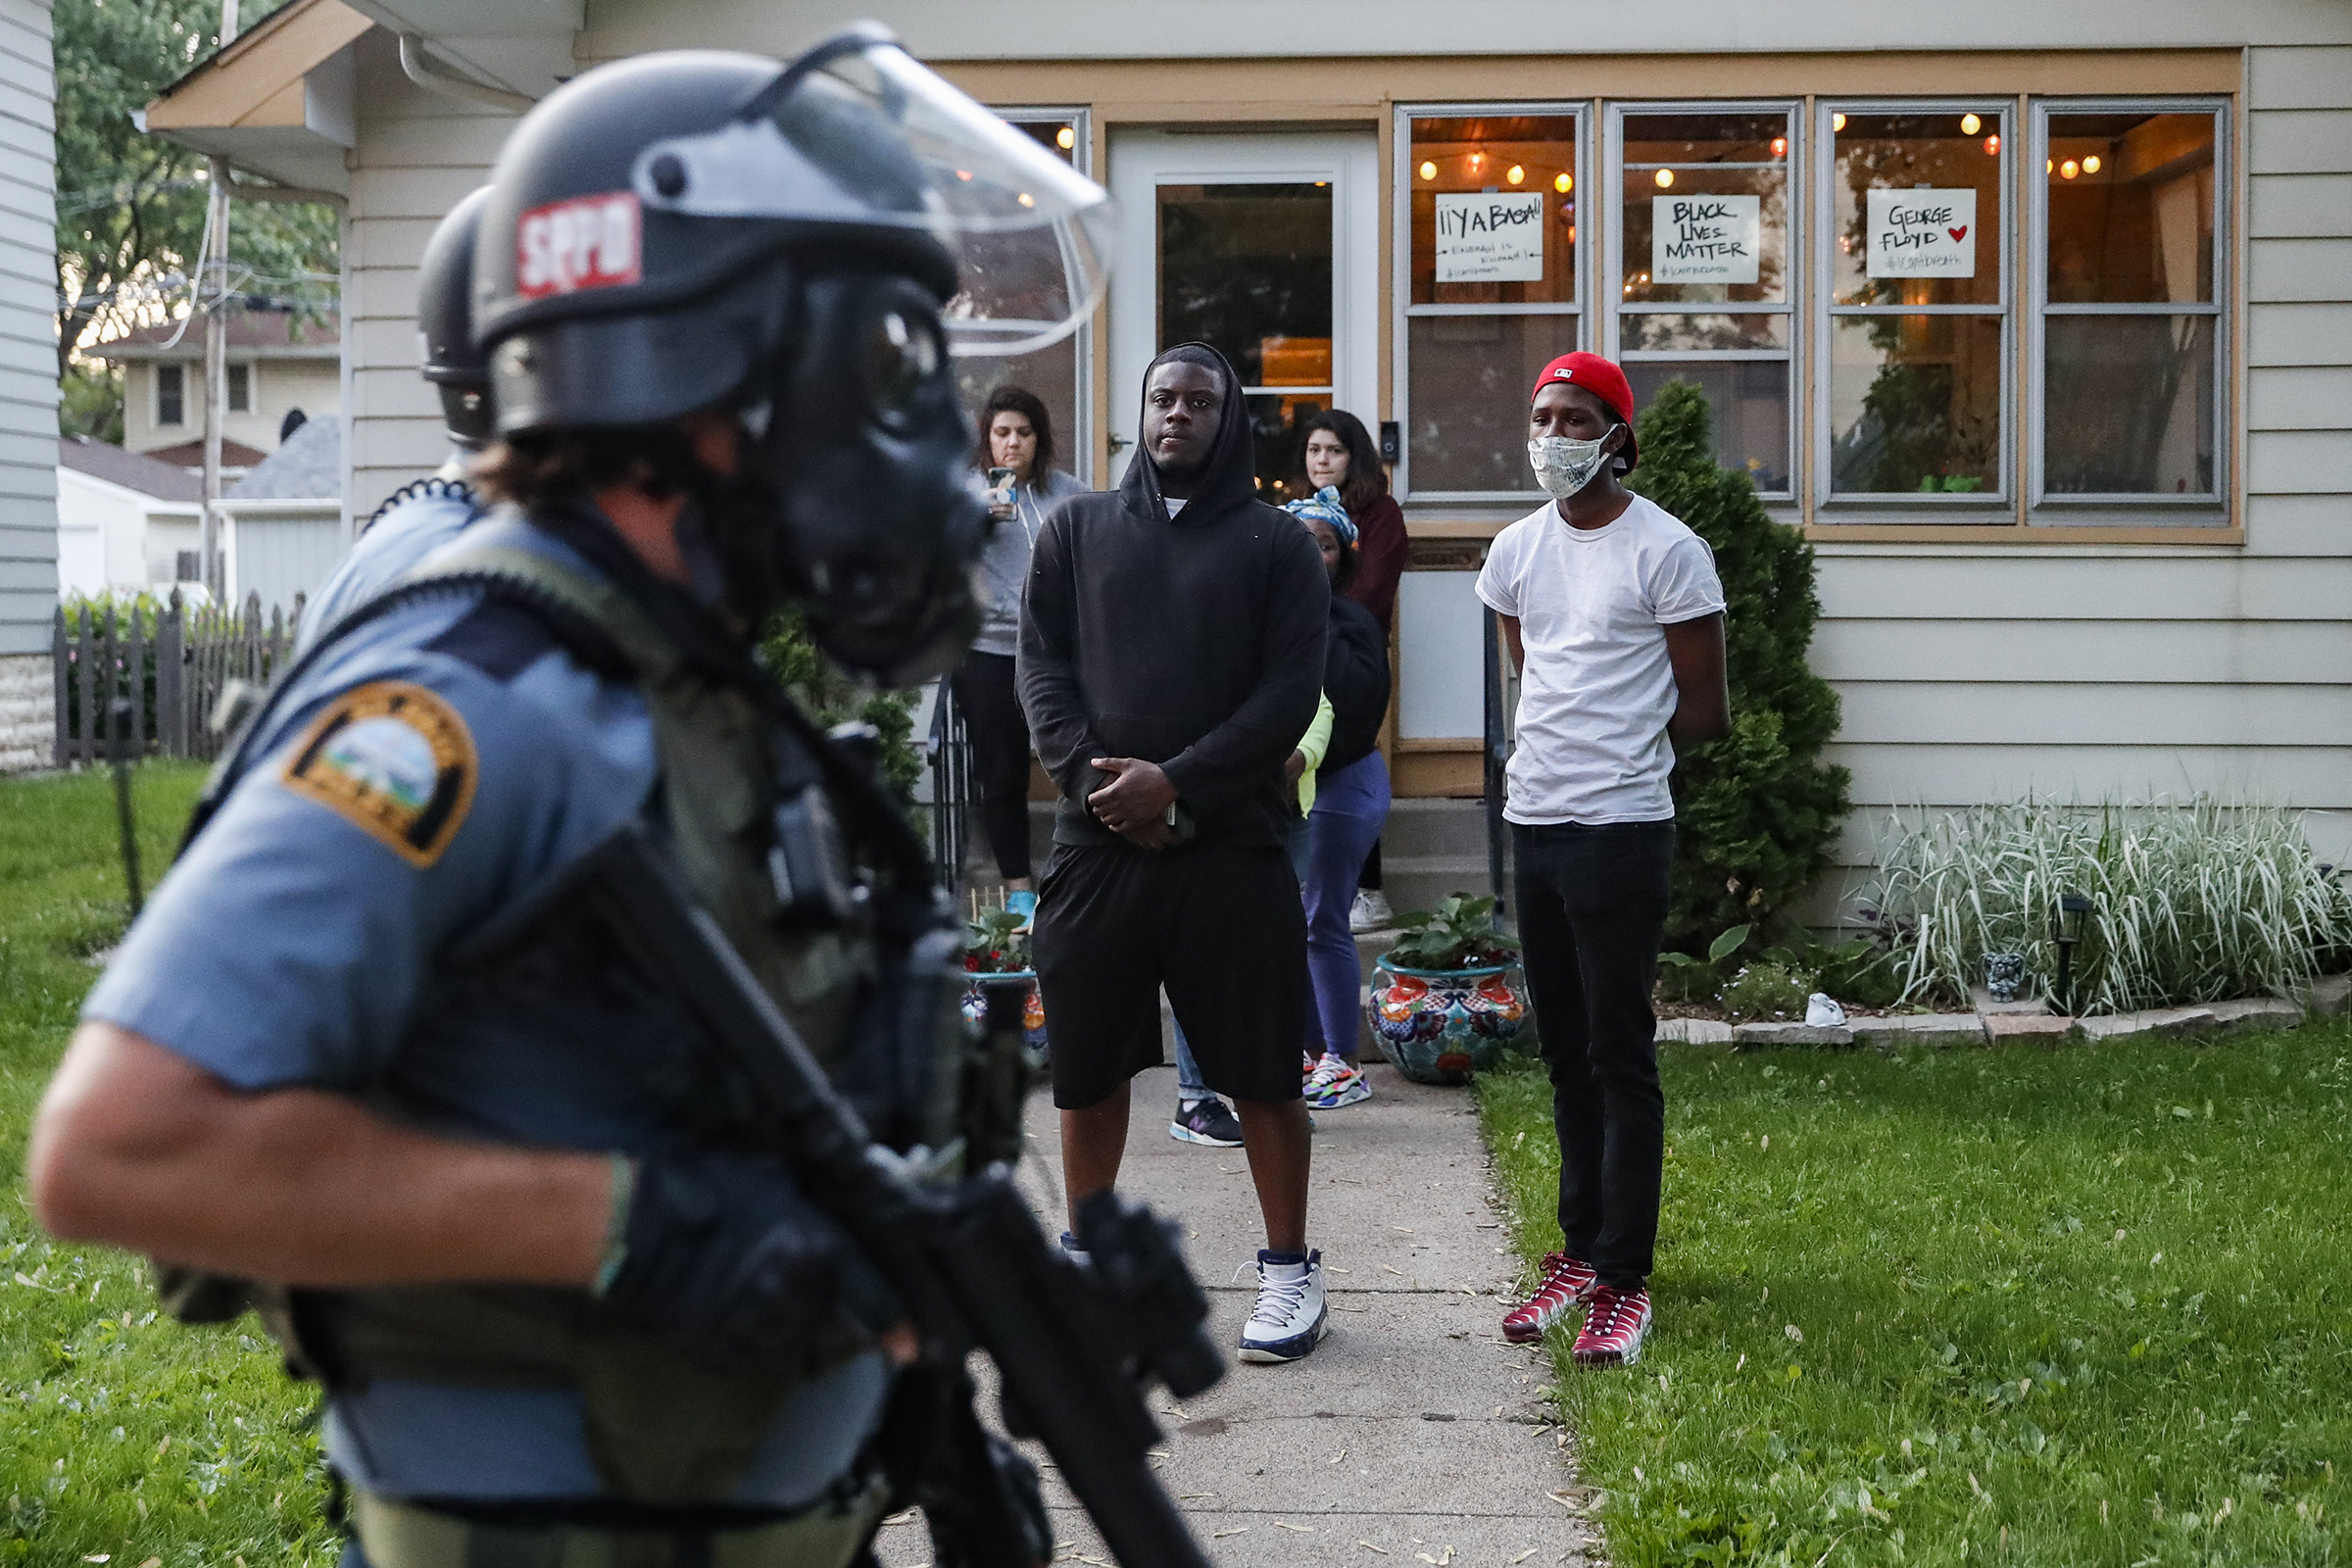 Protesters watch as police in riot gear walk down a residential street in St. Paul, Minn., on May 28.